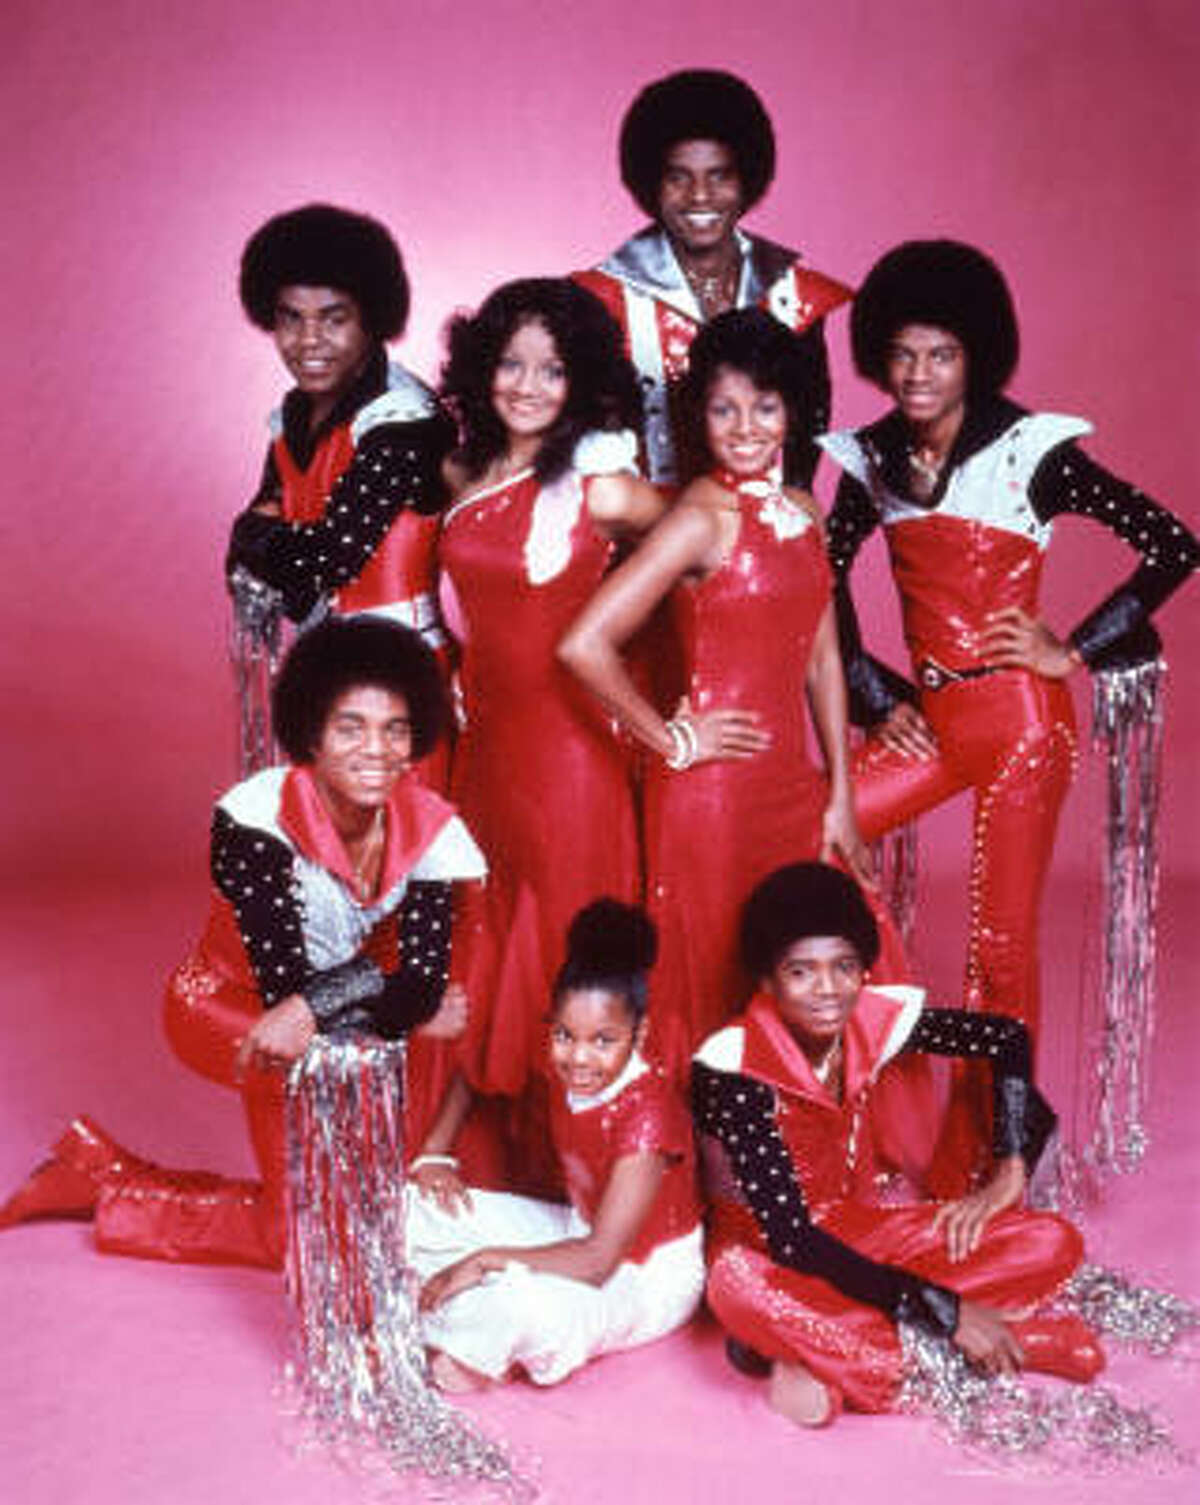 Michael Jackson and his star-filled family made music for more than three decades.